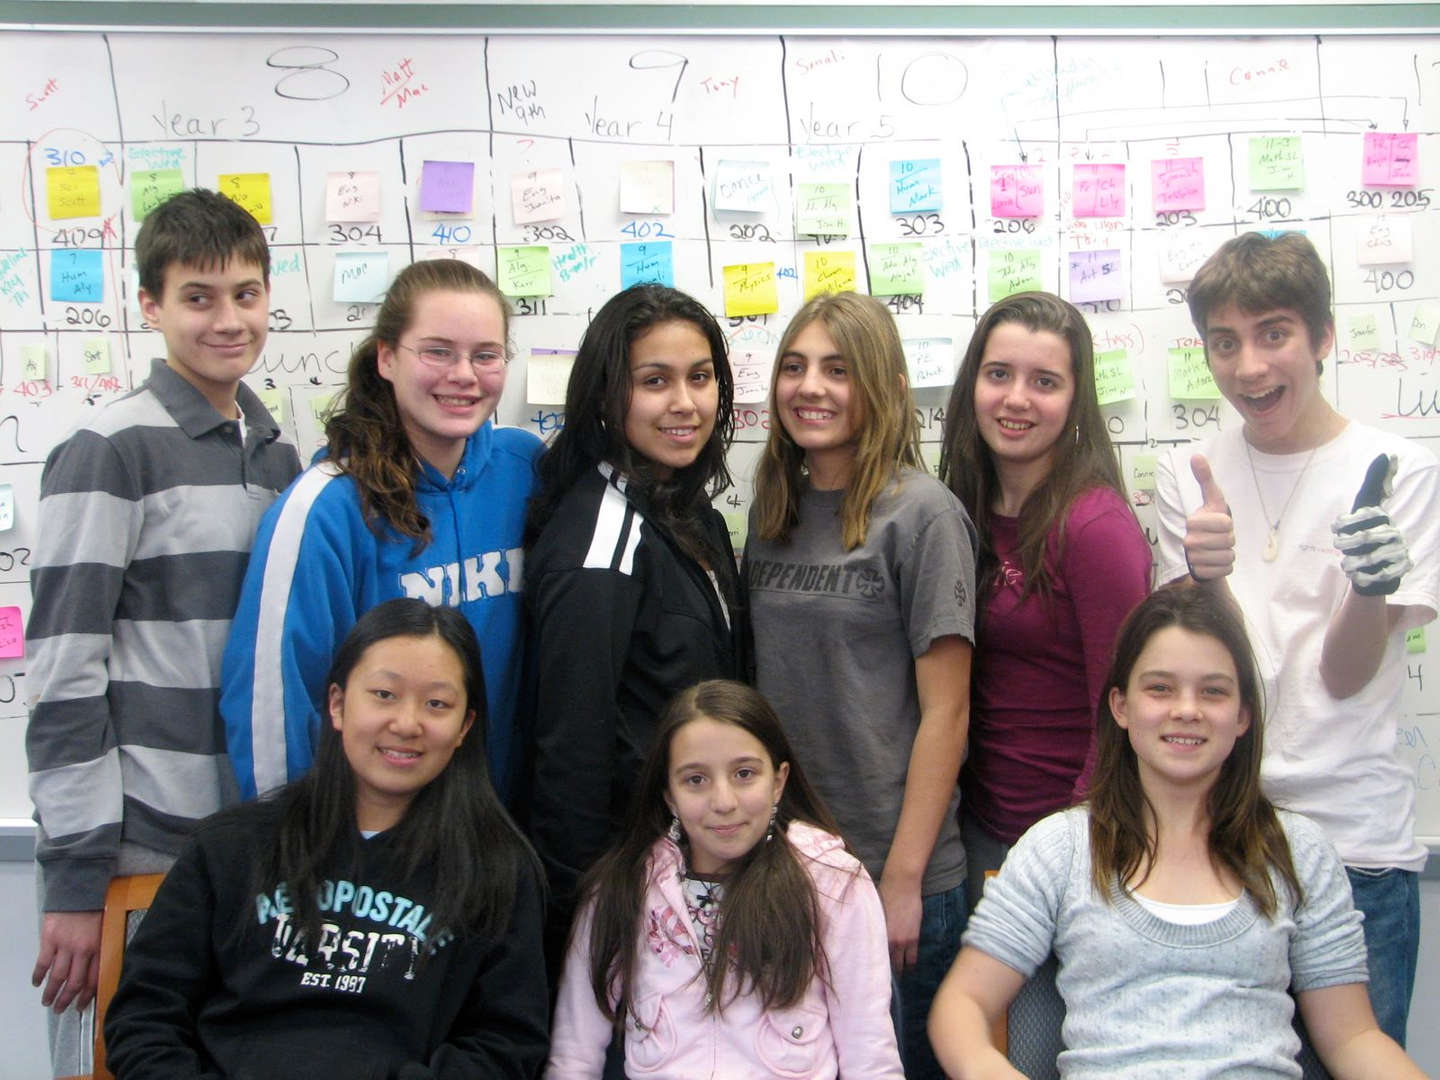 Students smile in front of a complex diagram dotted with sticky notes